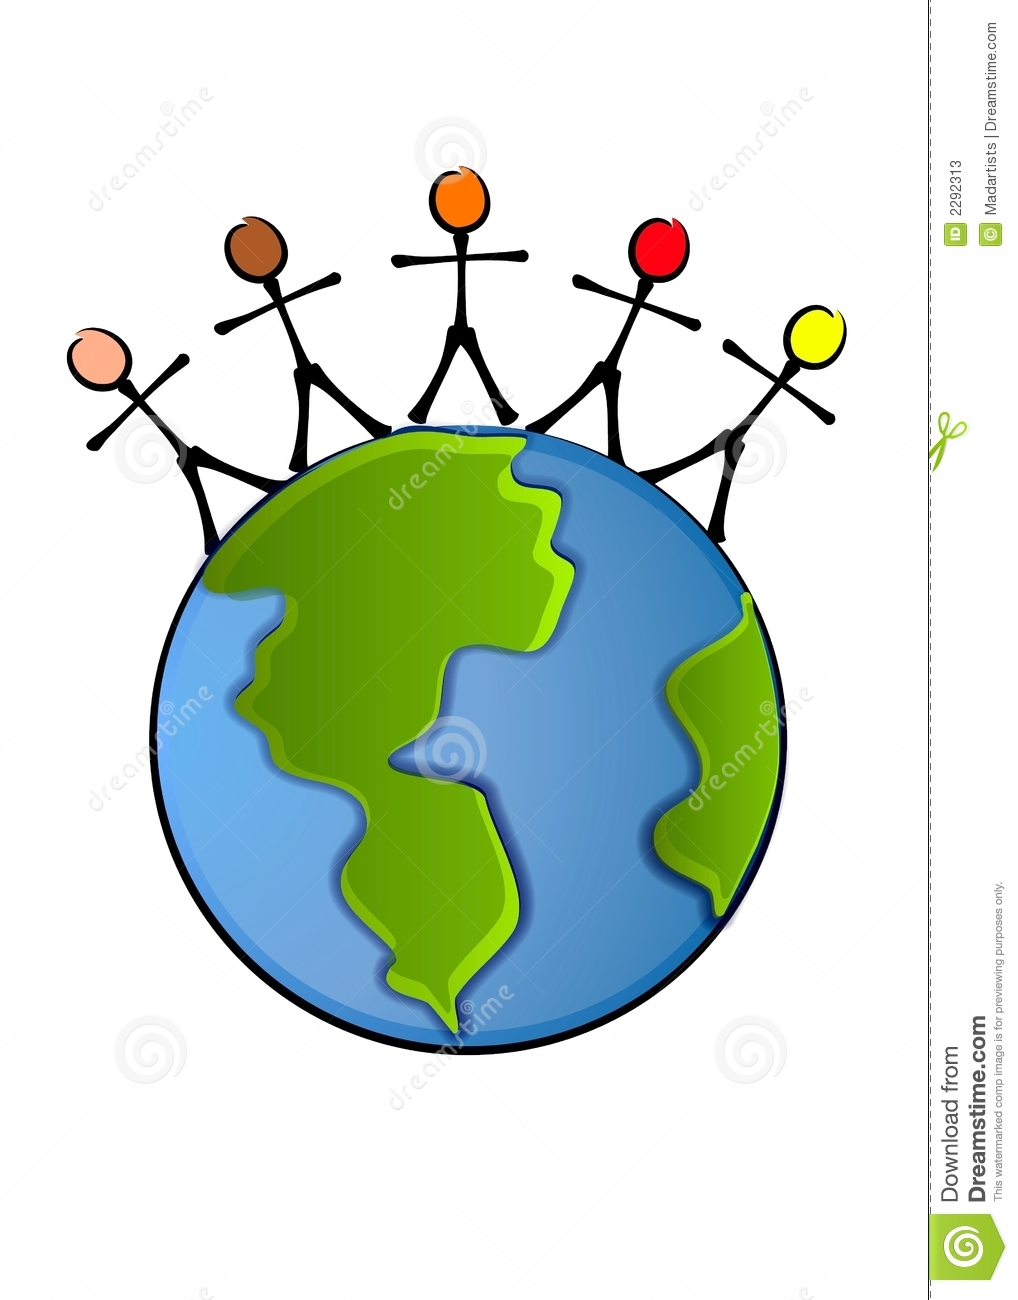 world peace earth clip art stock illustration illustration of rh dreamstime com clipart of the world map clipart of the world globe